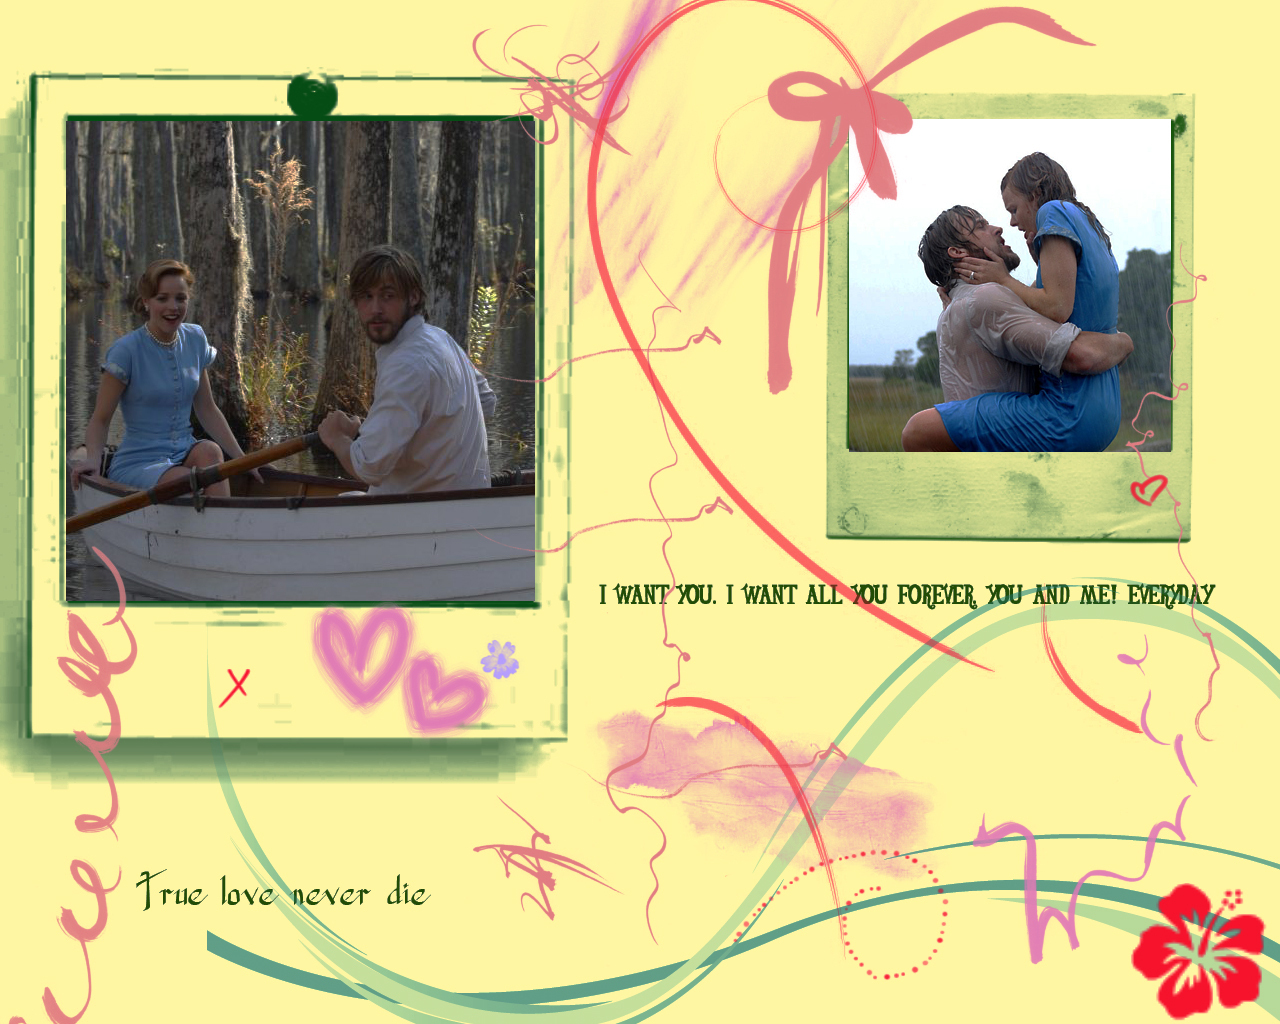 The notebook 바탕화면